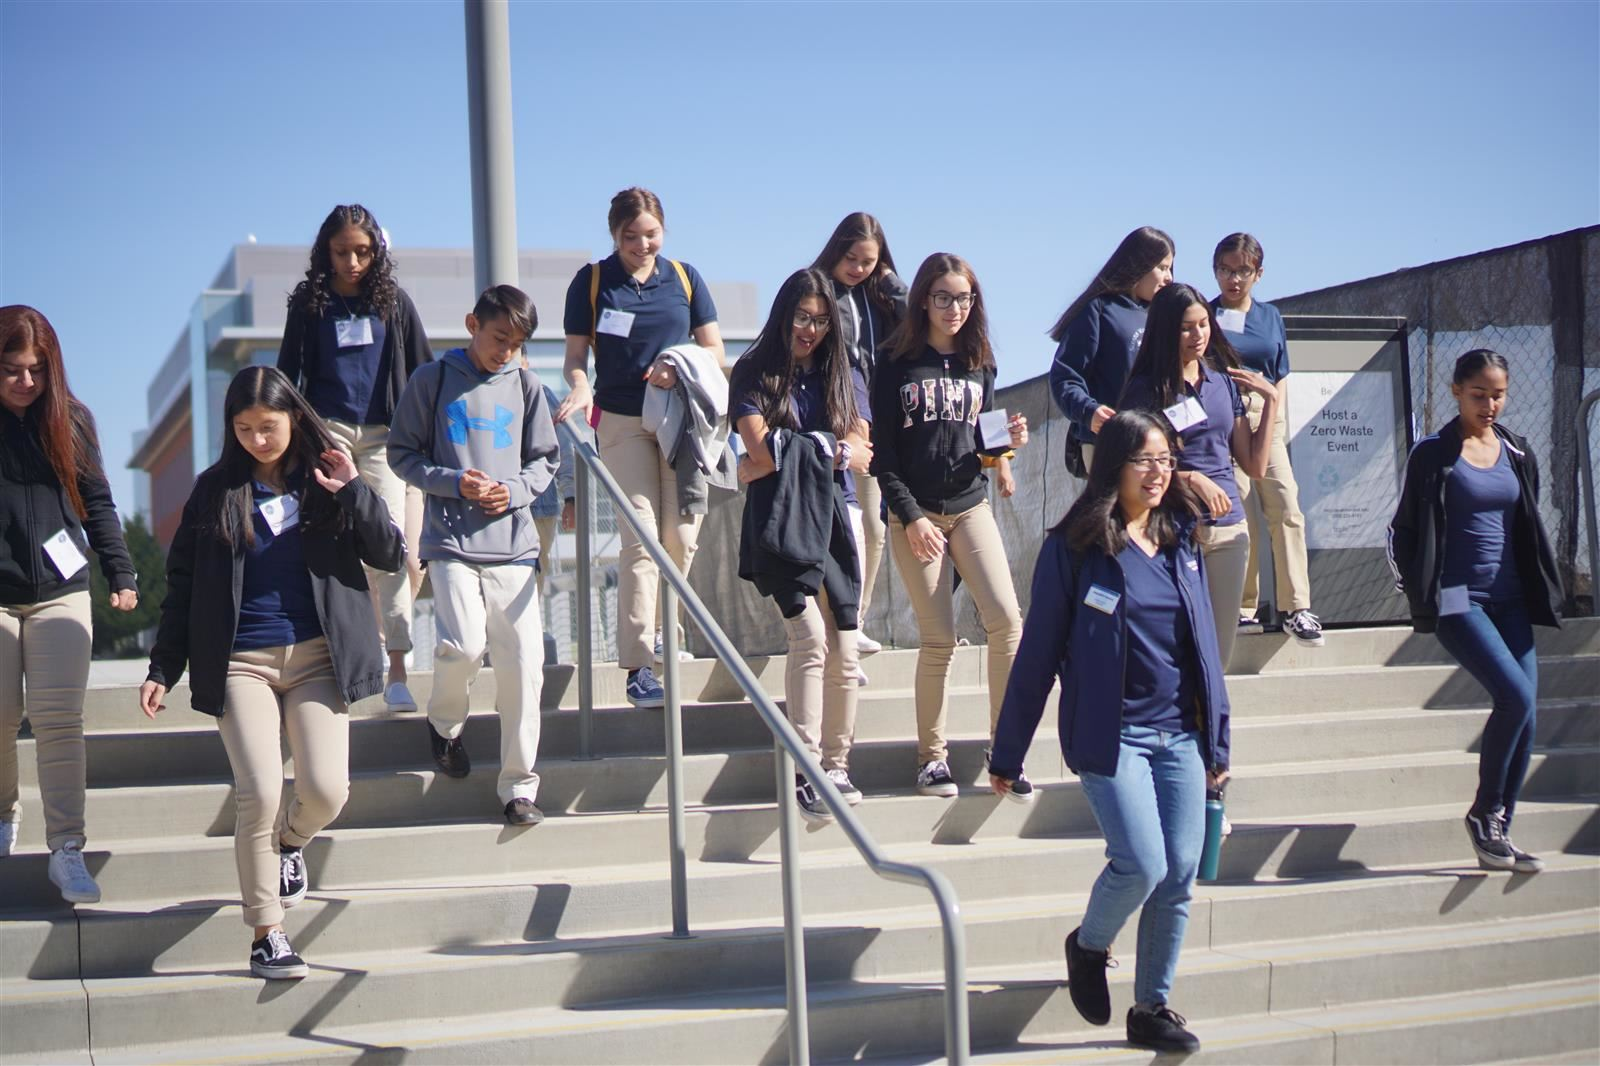 UCSF Doctors Academy Class of 2023 Visits UC Merced